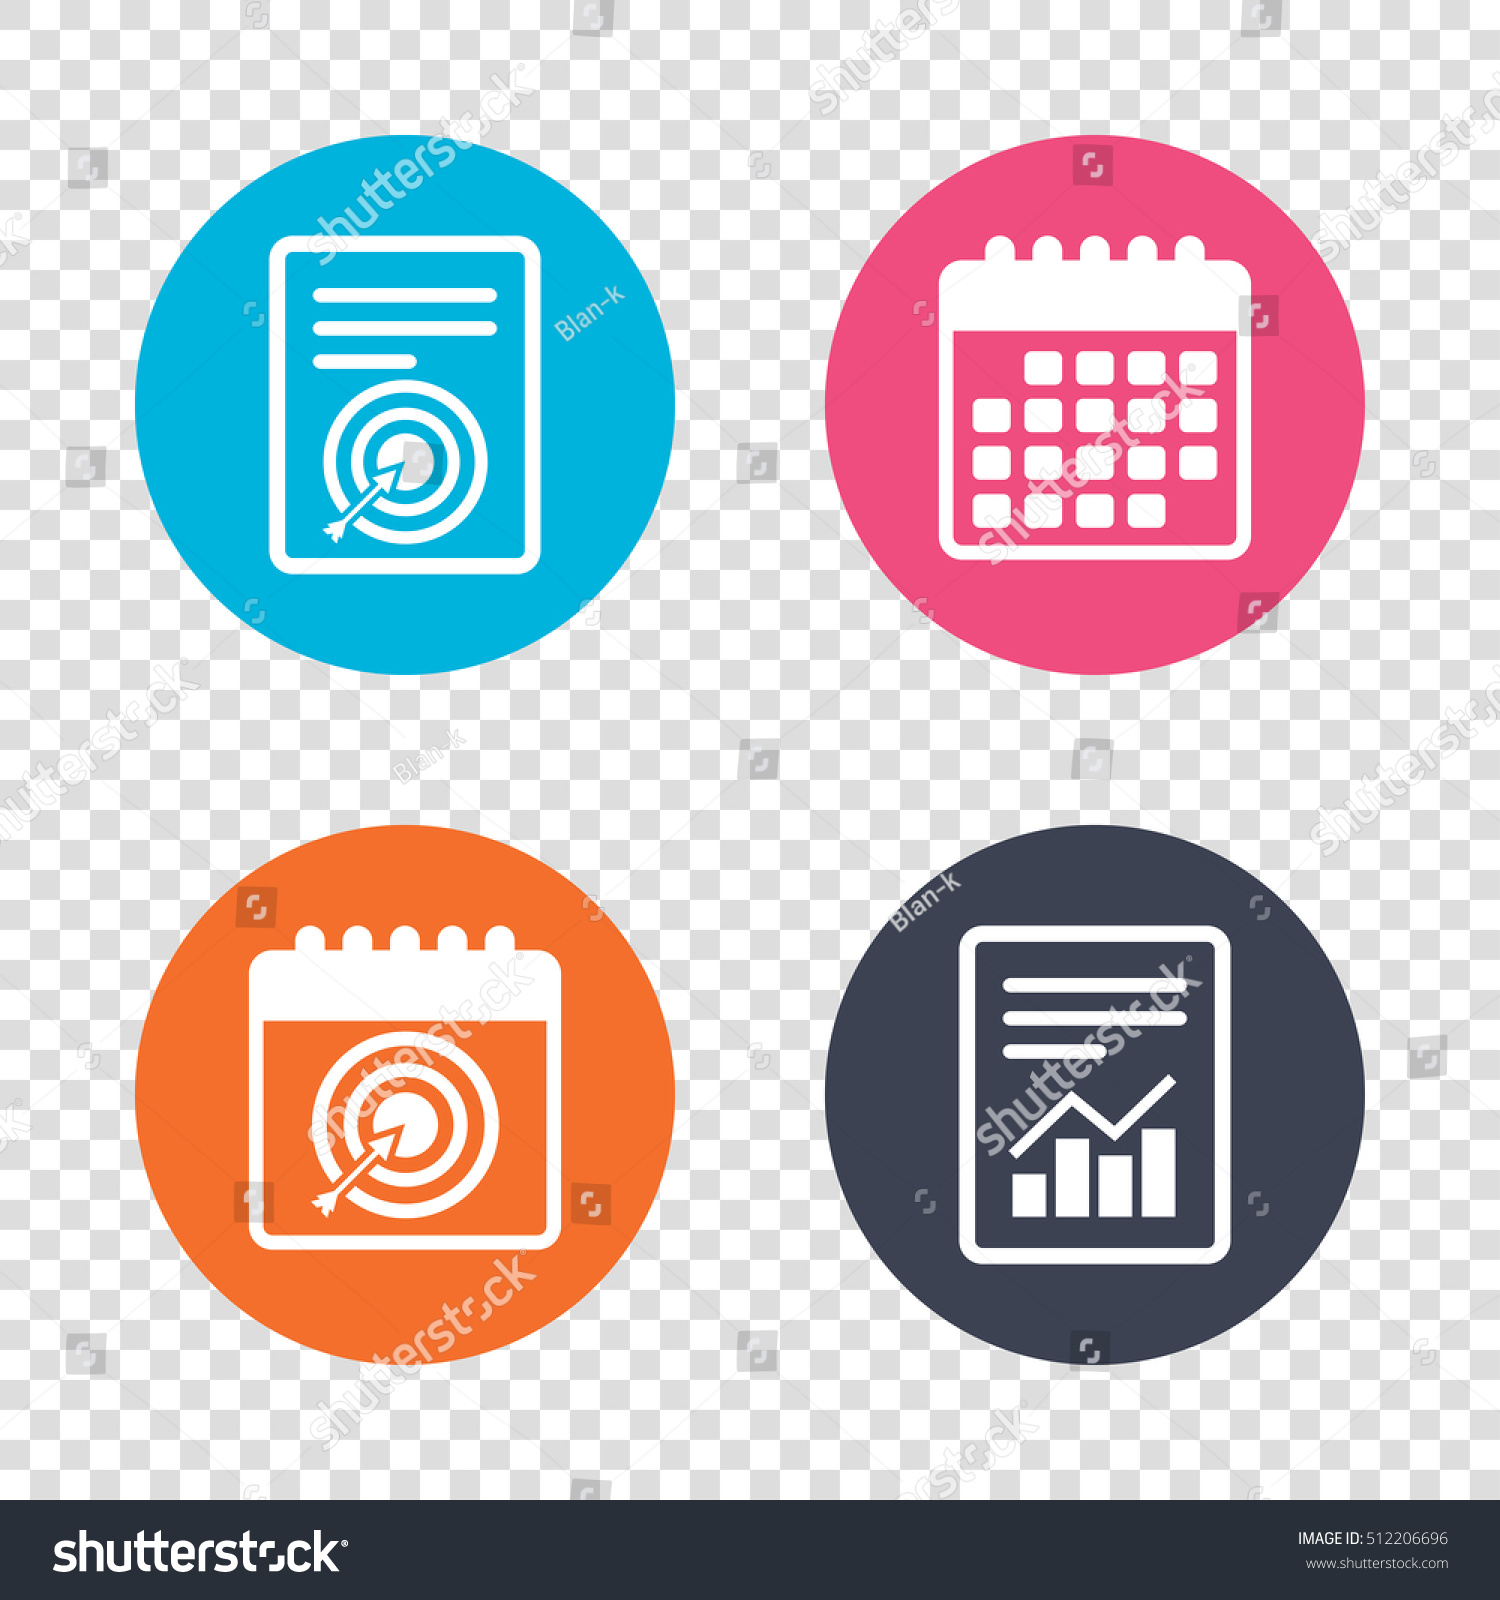 Report Document Calendar Icons Target Aim Sign Icon Darts Board With Arrow Symbol